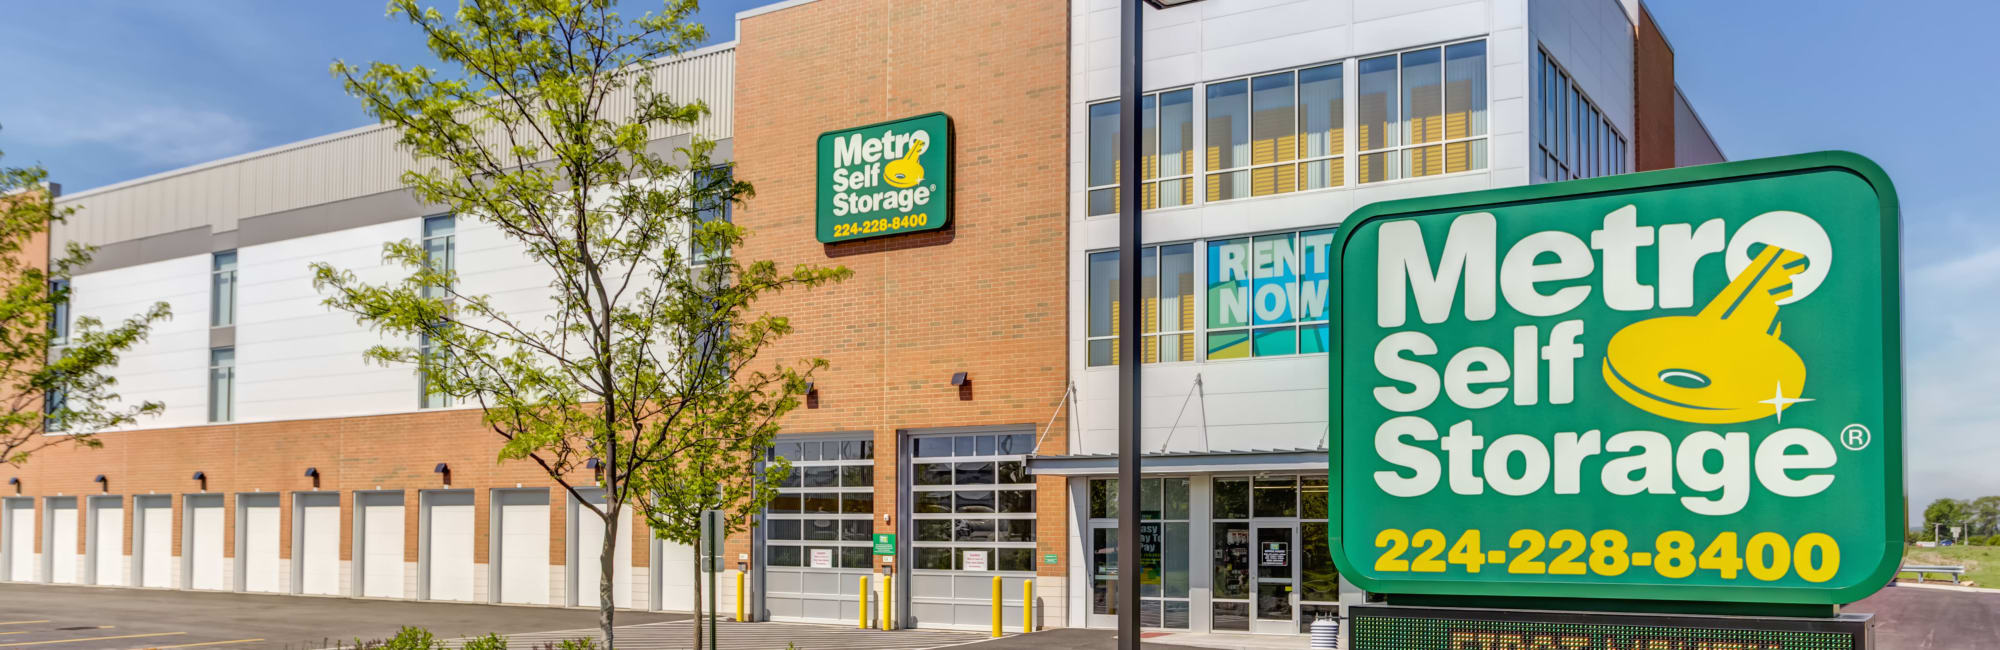 Metro Self Storage in St. Charles, IL